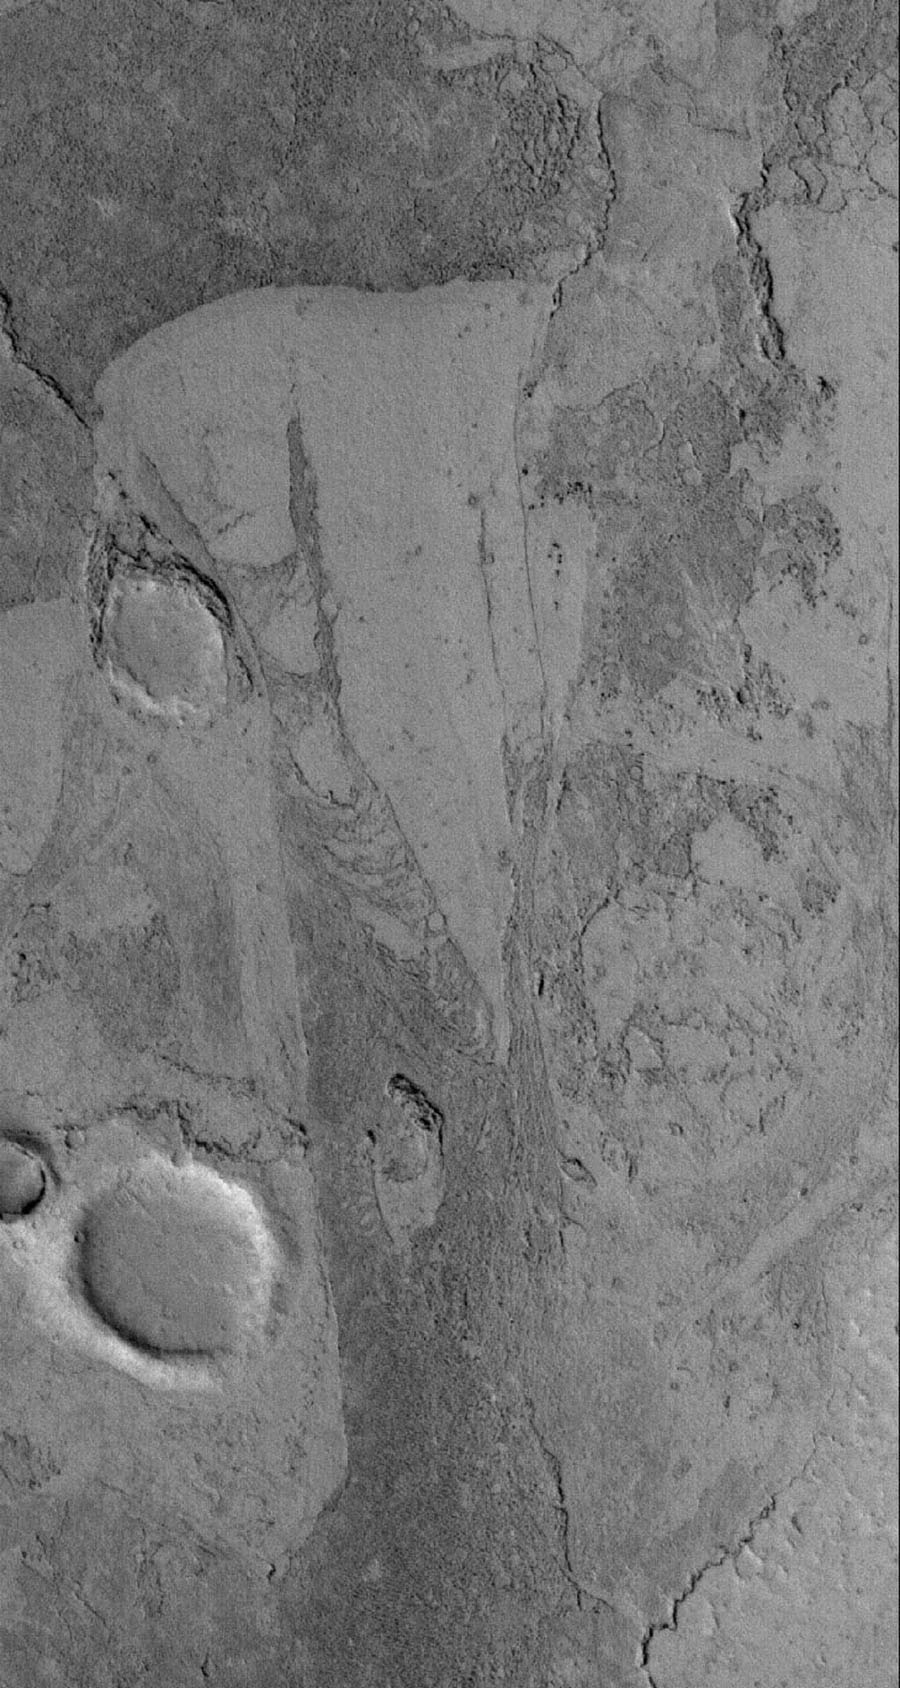 NASA's Mars Global Surveyor shows the solidified remains of flows, probably lava, but possibly mud, in the Zephyria region of Mars, south of Cerberus.